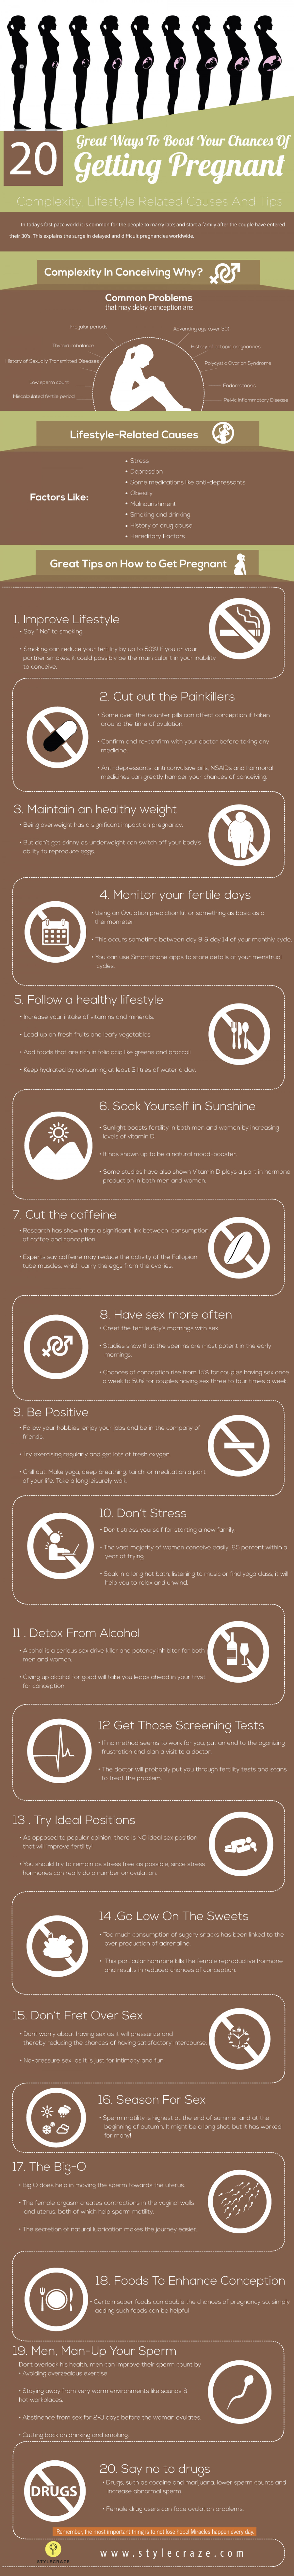 20 Great Ways to Boost Your Chances of Getting Pregnant Infographic